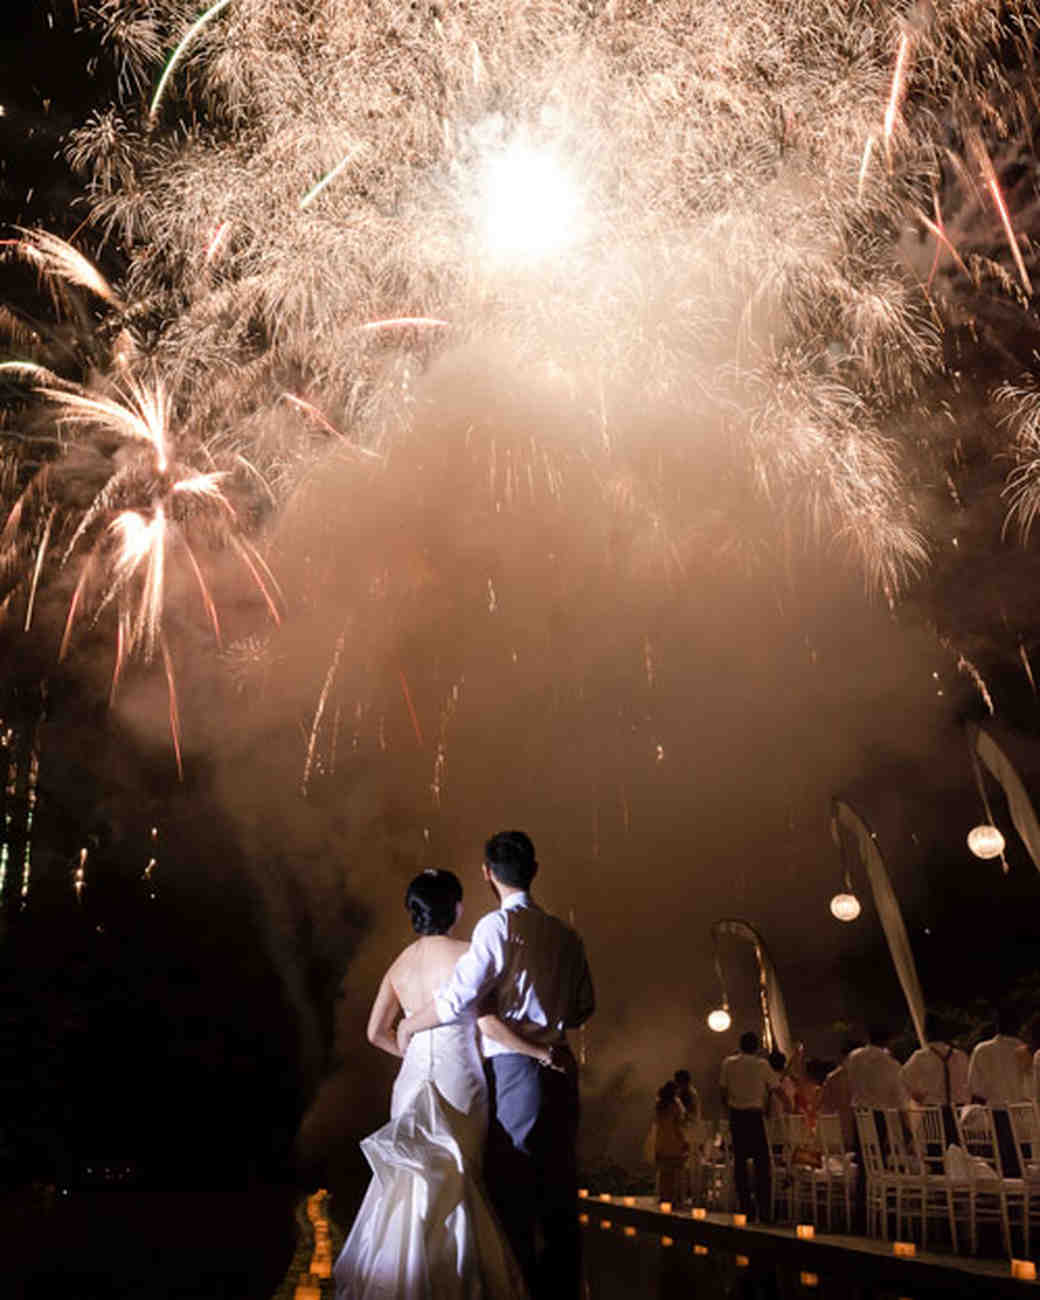 couple underneath fireworks